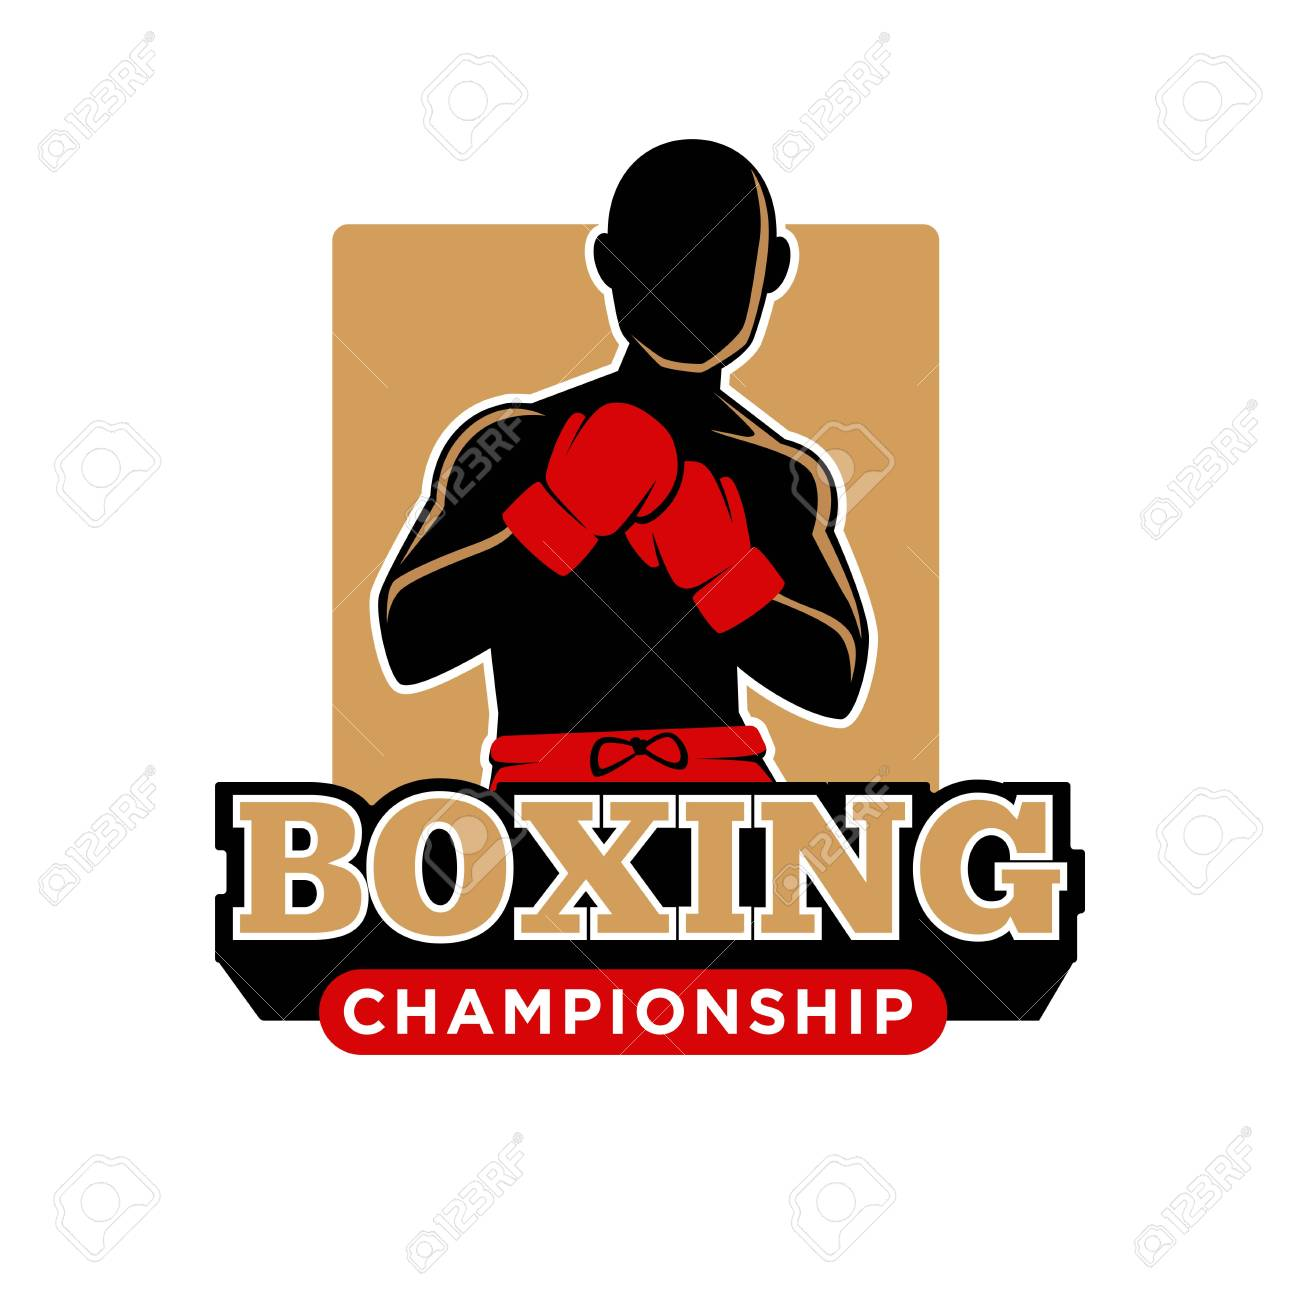 Boxing Gloves In The Old School Style Royalty Free Cliparts, Vectors, And  Stock Illustration. Image 92052973.